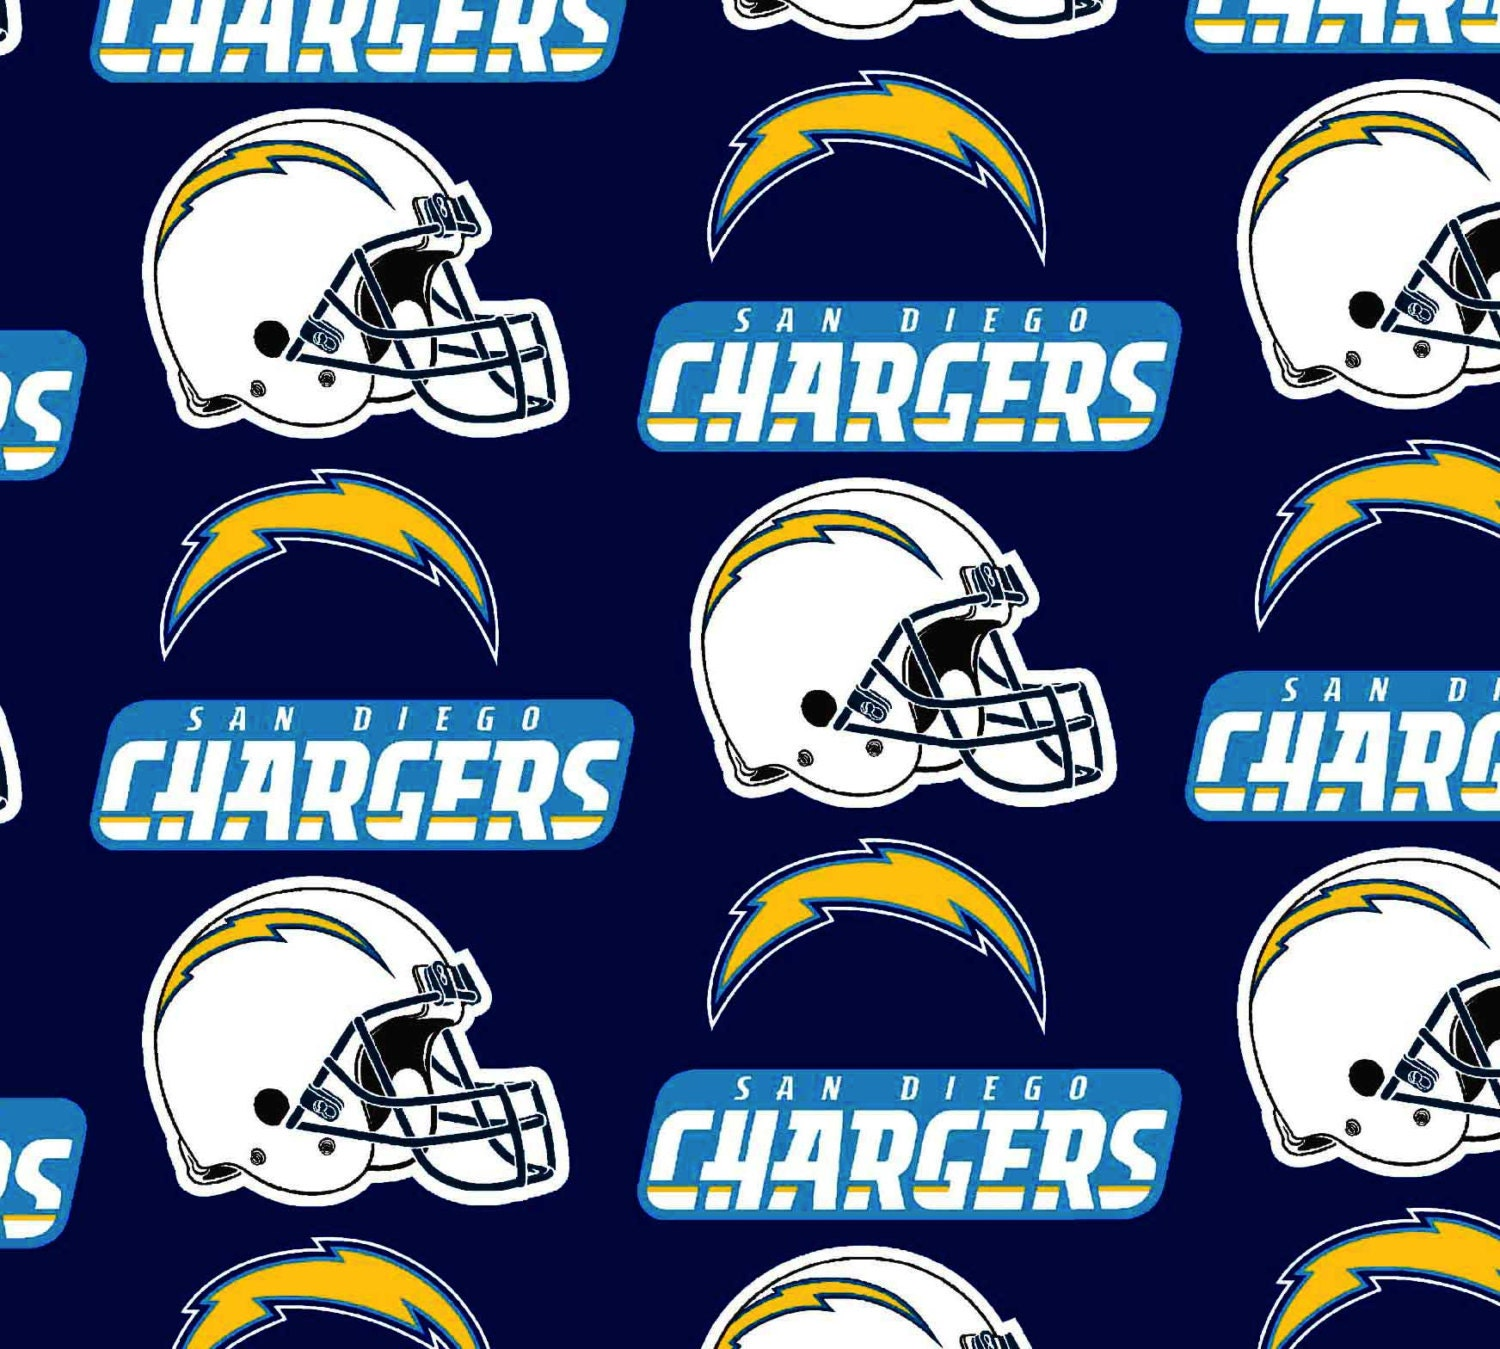 San Diego Chargers Nfl Cotton Fabric By The Yard Sports